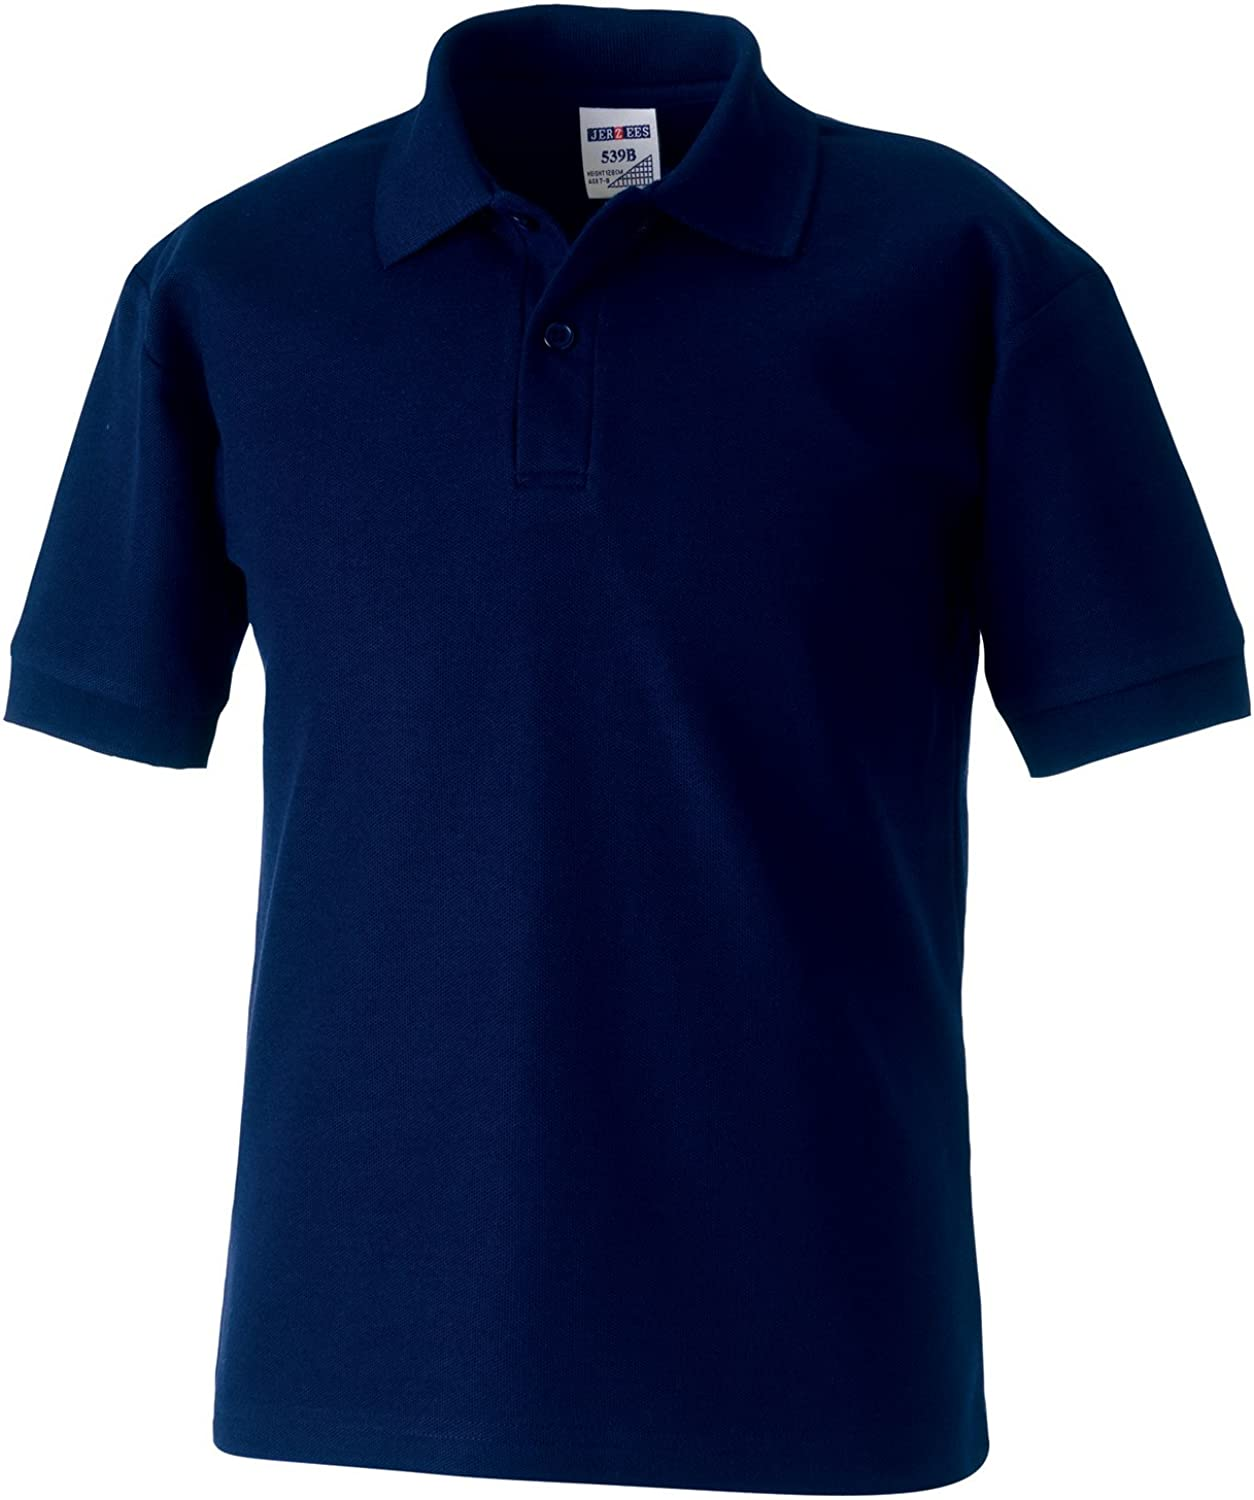 Jerzees Schoolgear Kids OFFicial site Shirt Don't miss the campaign Polo